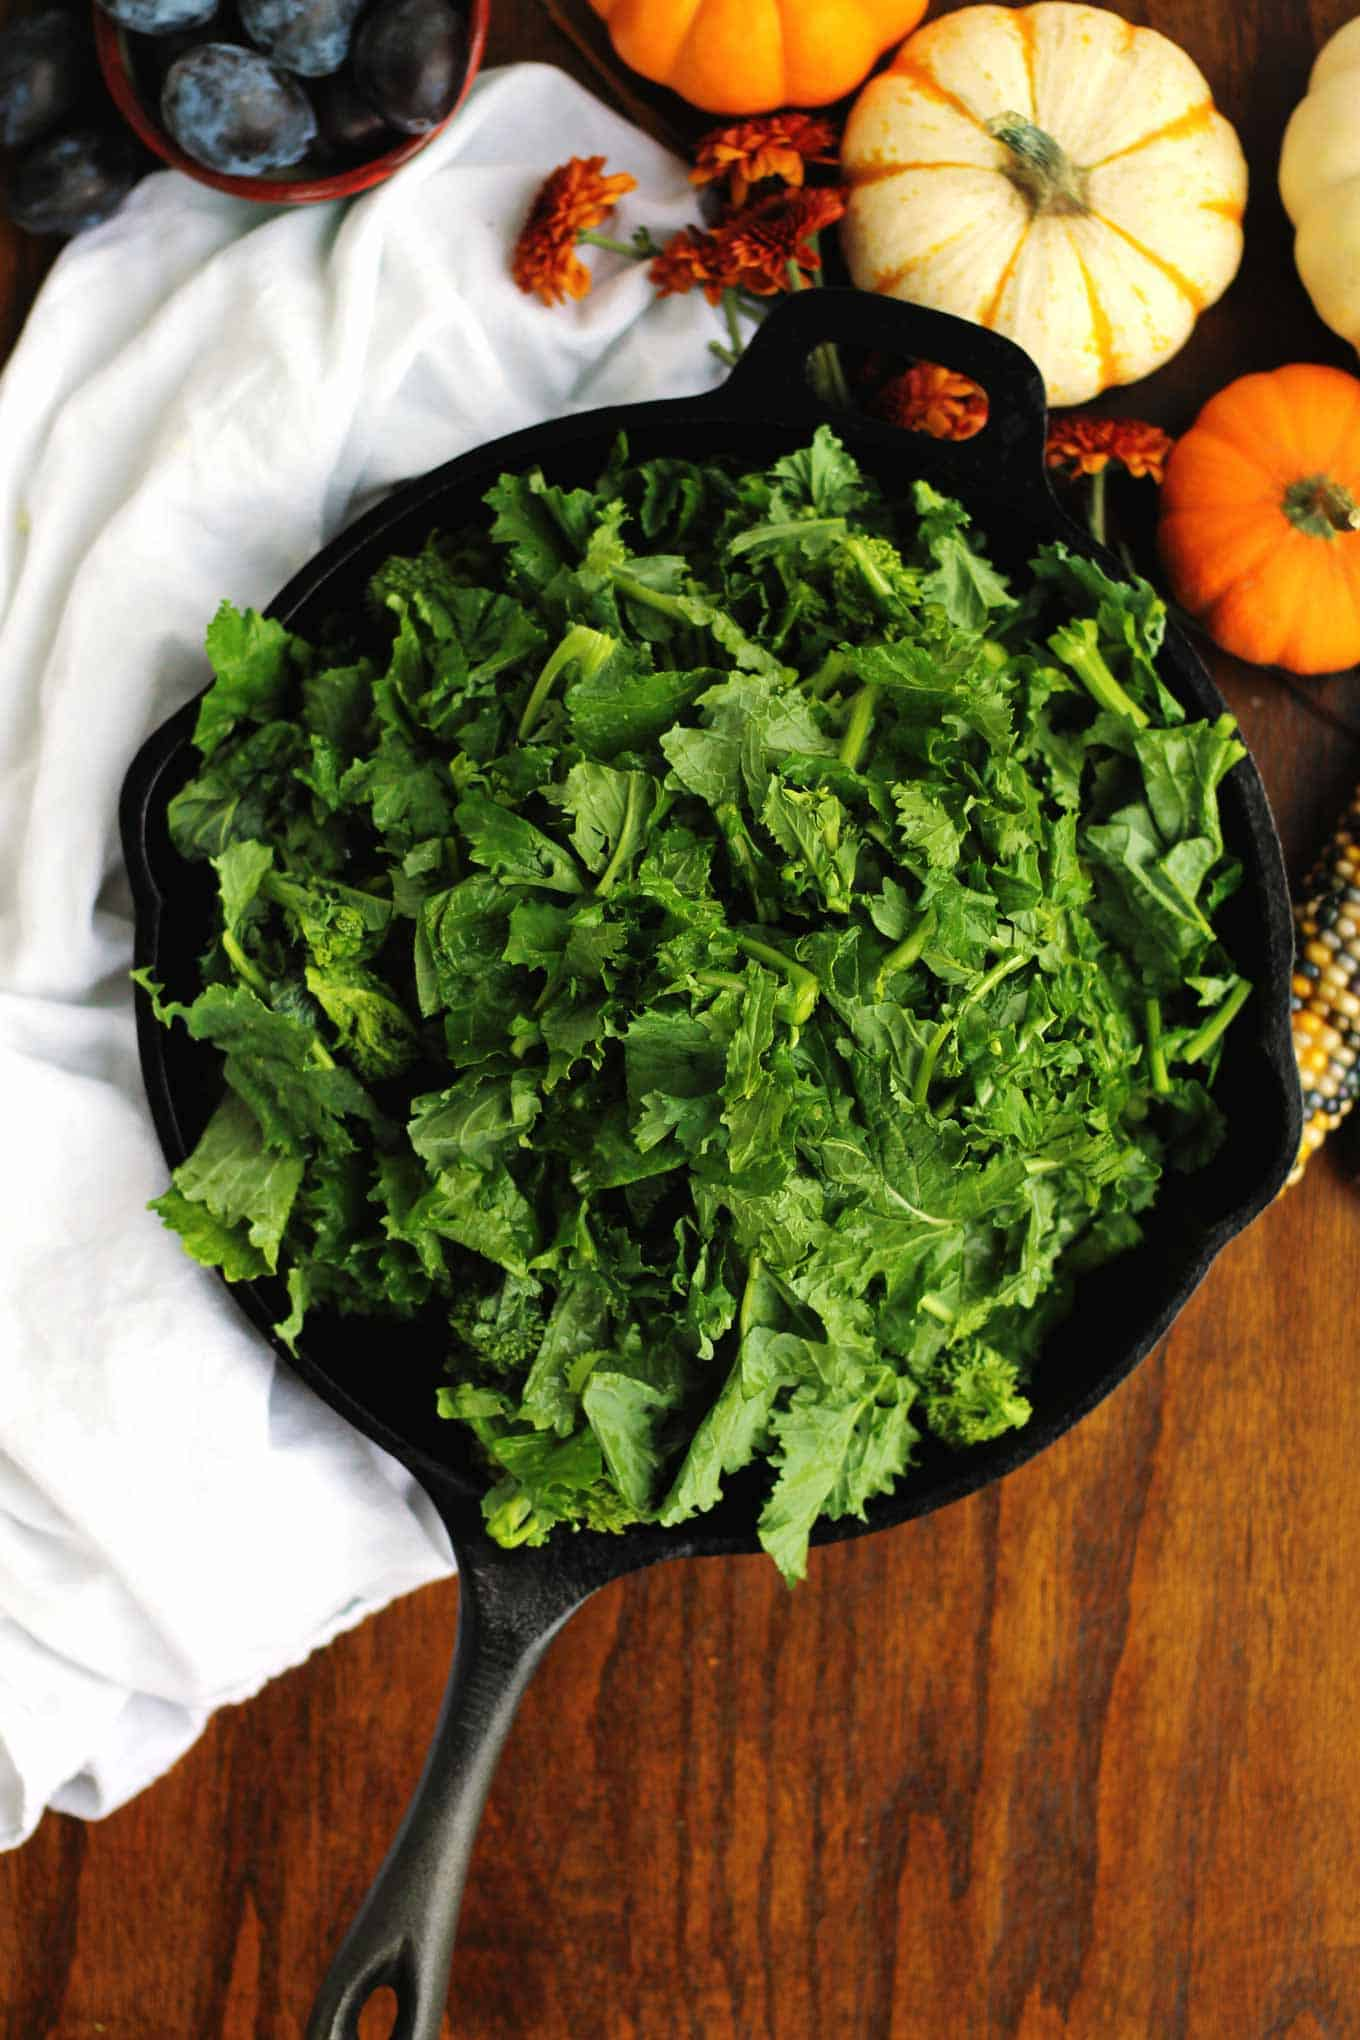 broccoli rabe and kale in a black skillet